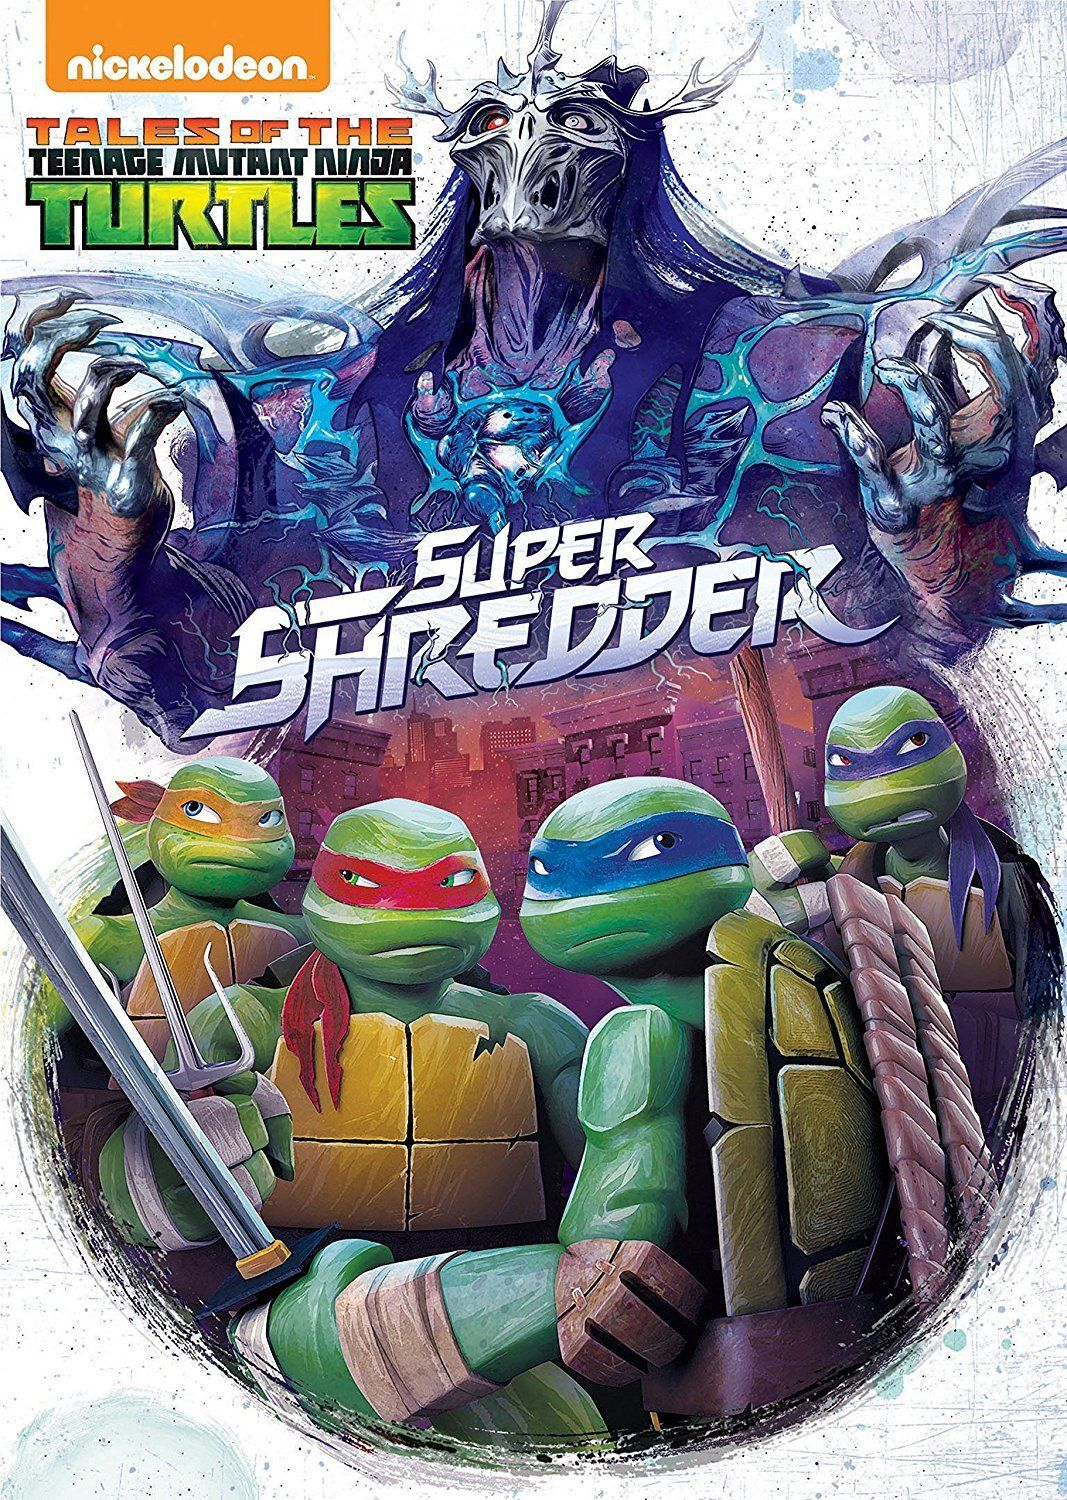 Tales Of The Teenage Mutant Ninja Turtles Super Shredder Review Otaku Dome The Latest News In Anime Manga Gaming And More